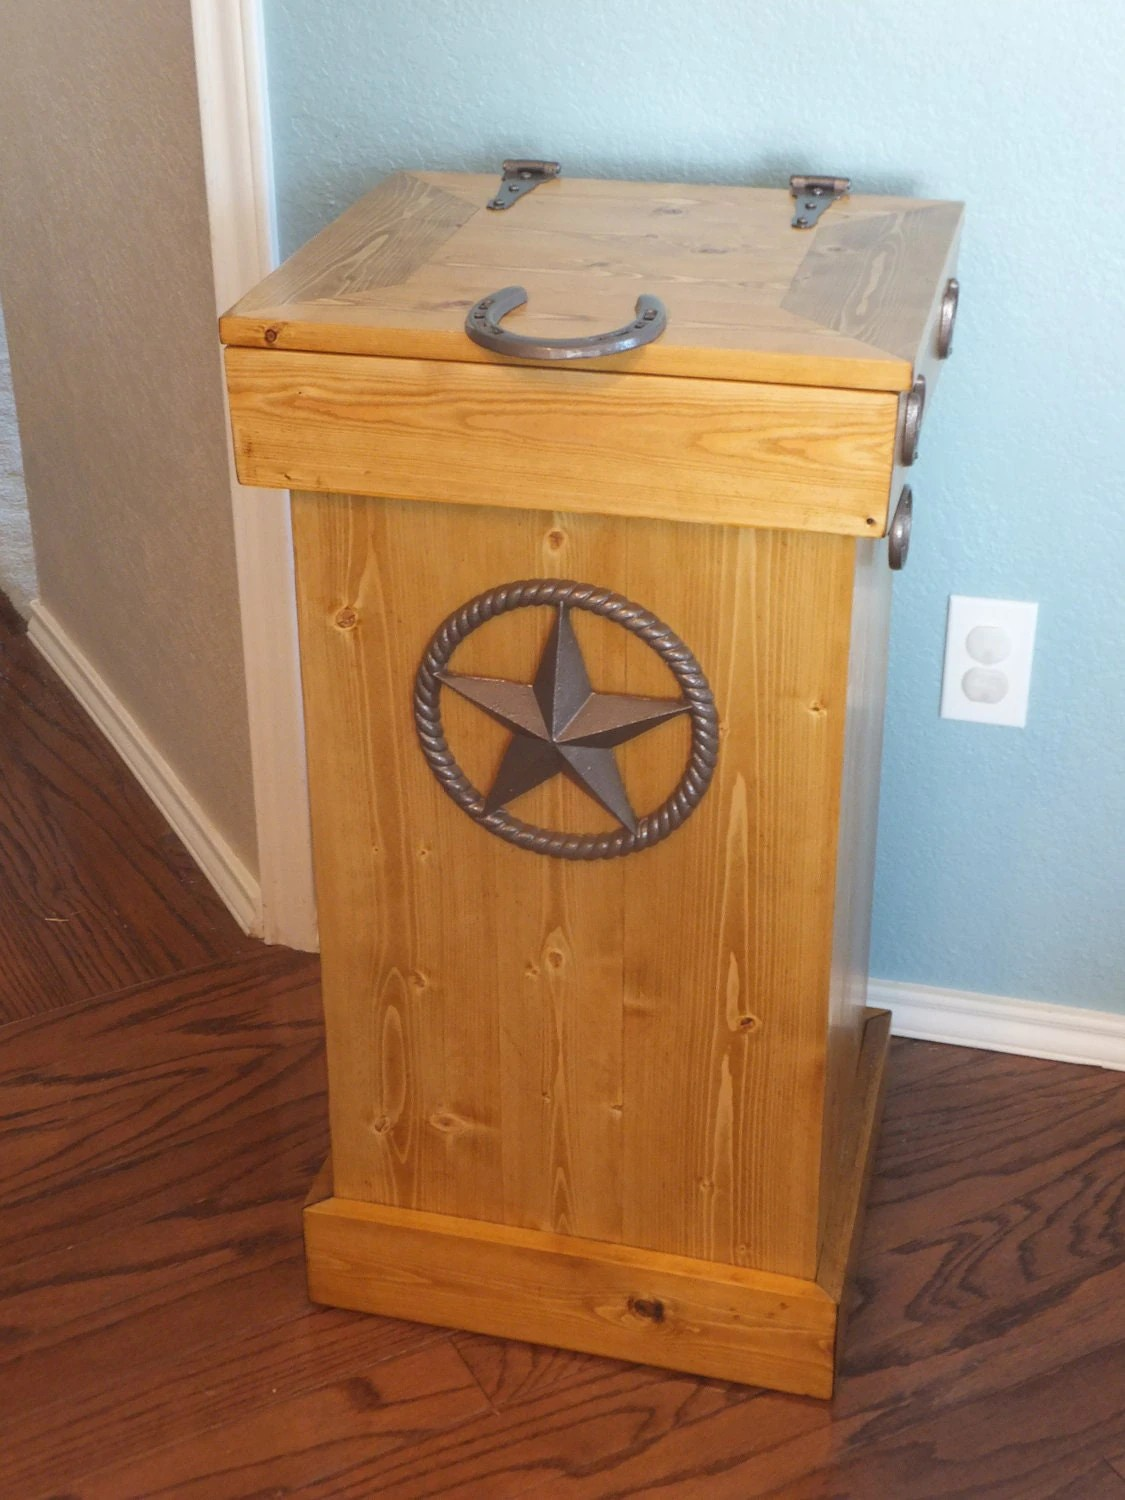 Wooden Kitchen Trash Containers Wood Trash Can Storage Bin